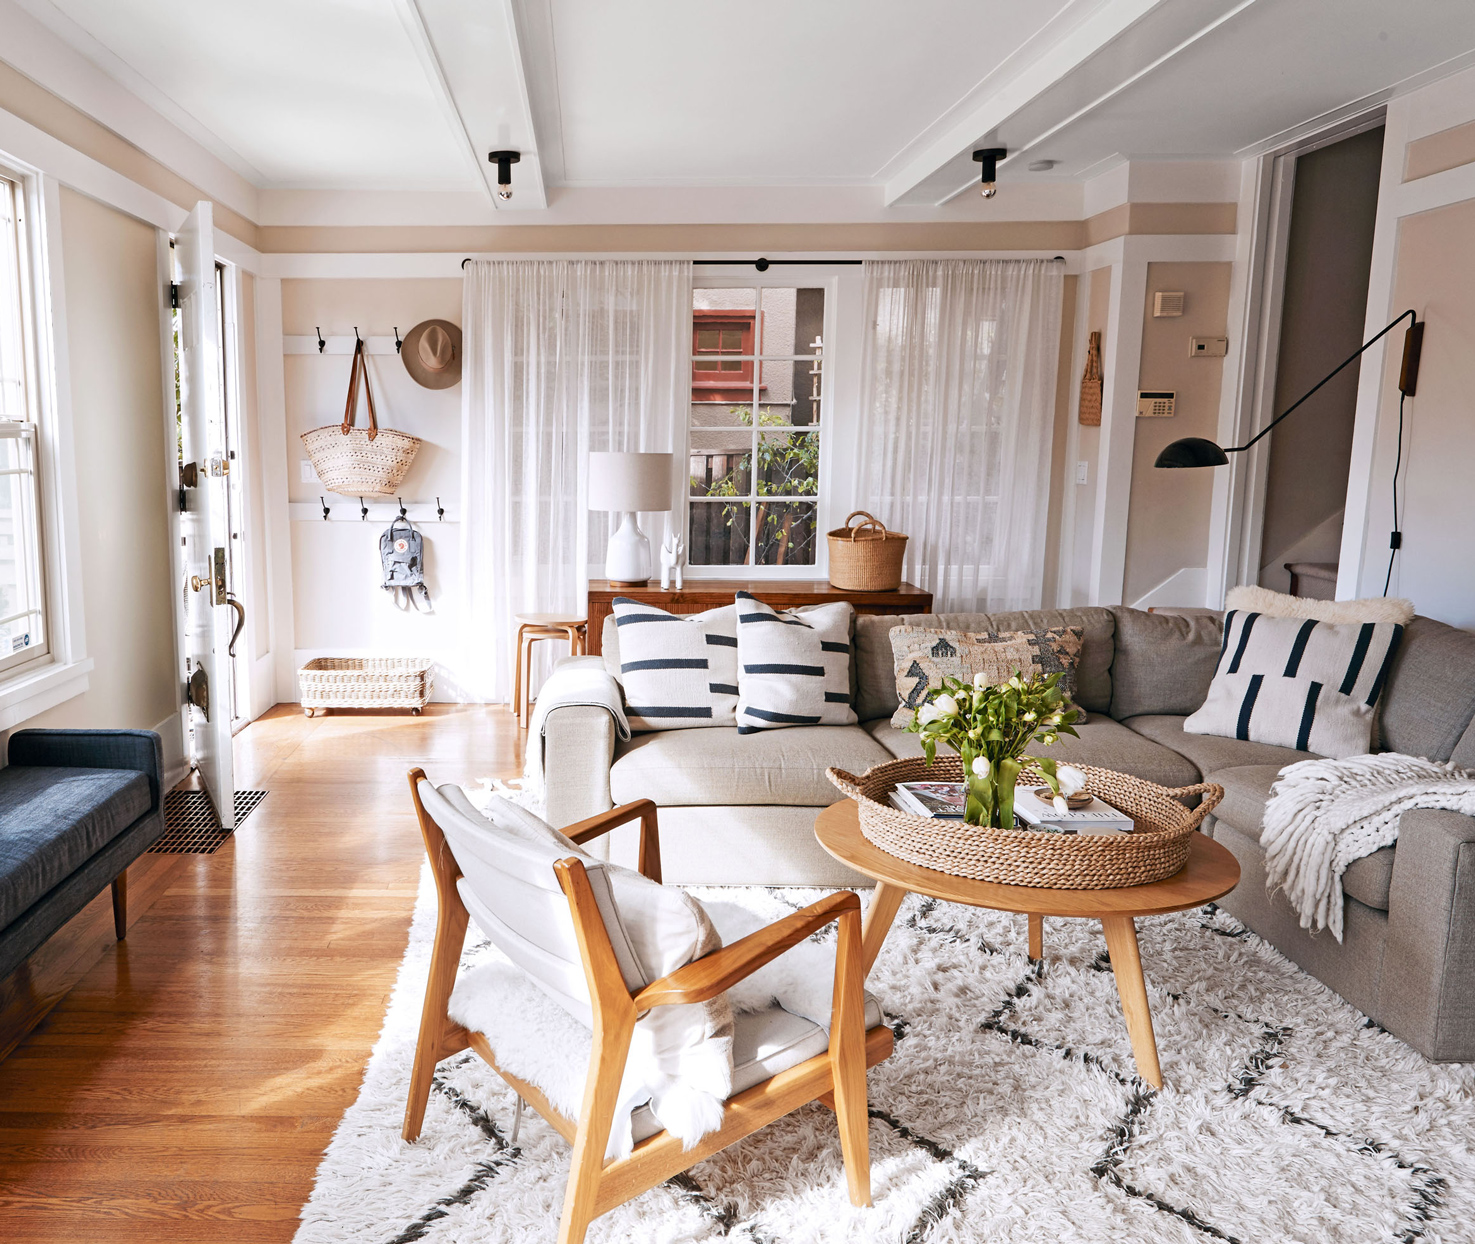 neutral colored living room with l-shaped sofa